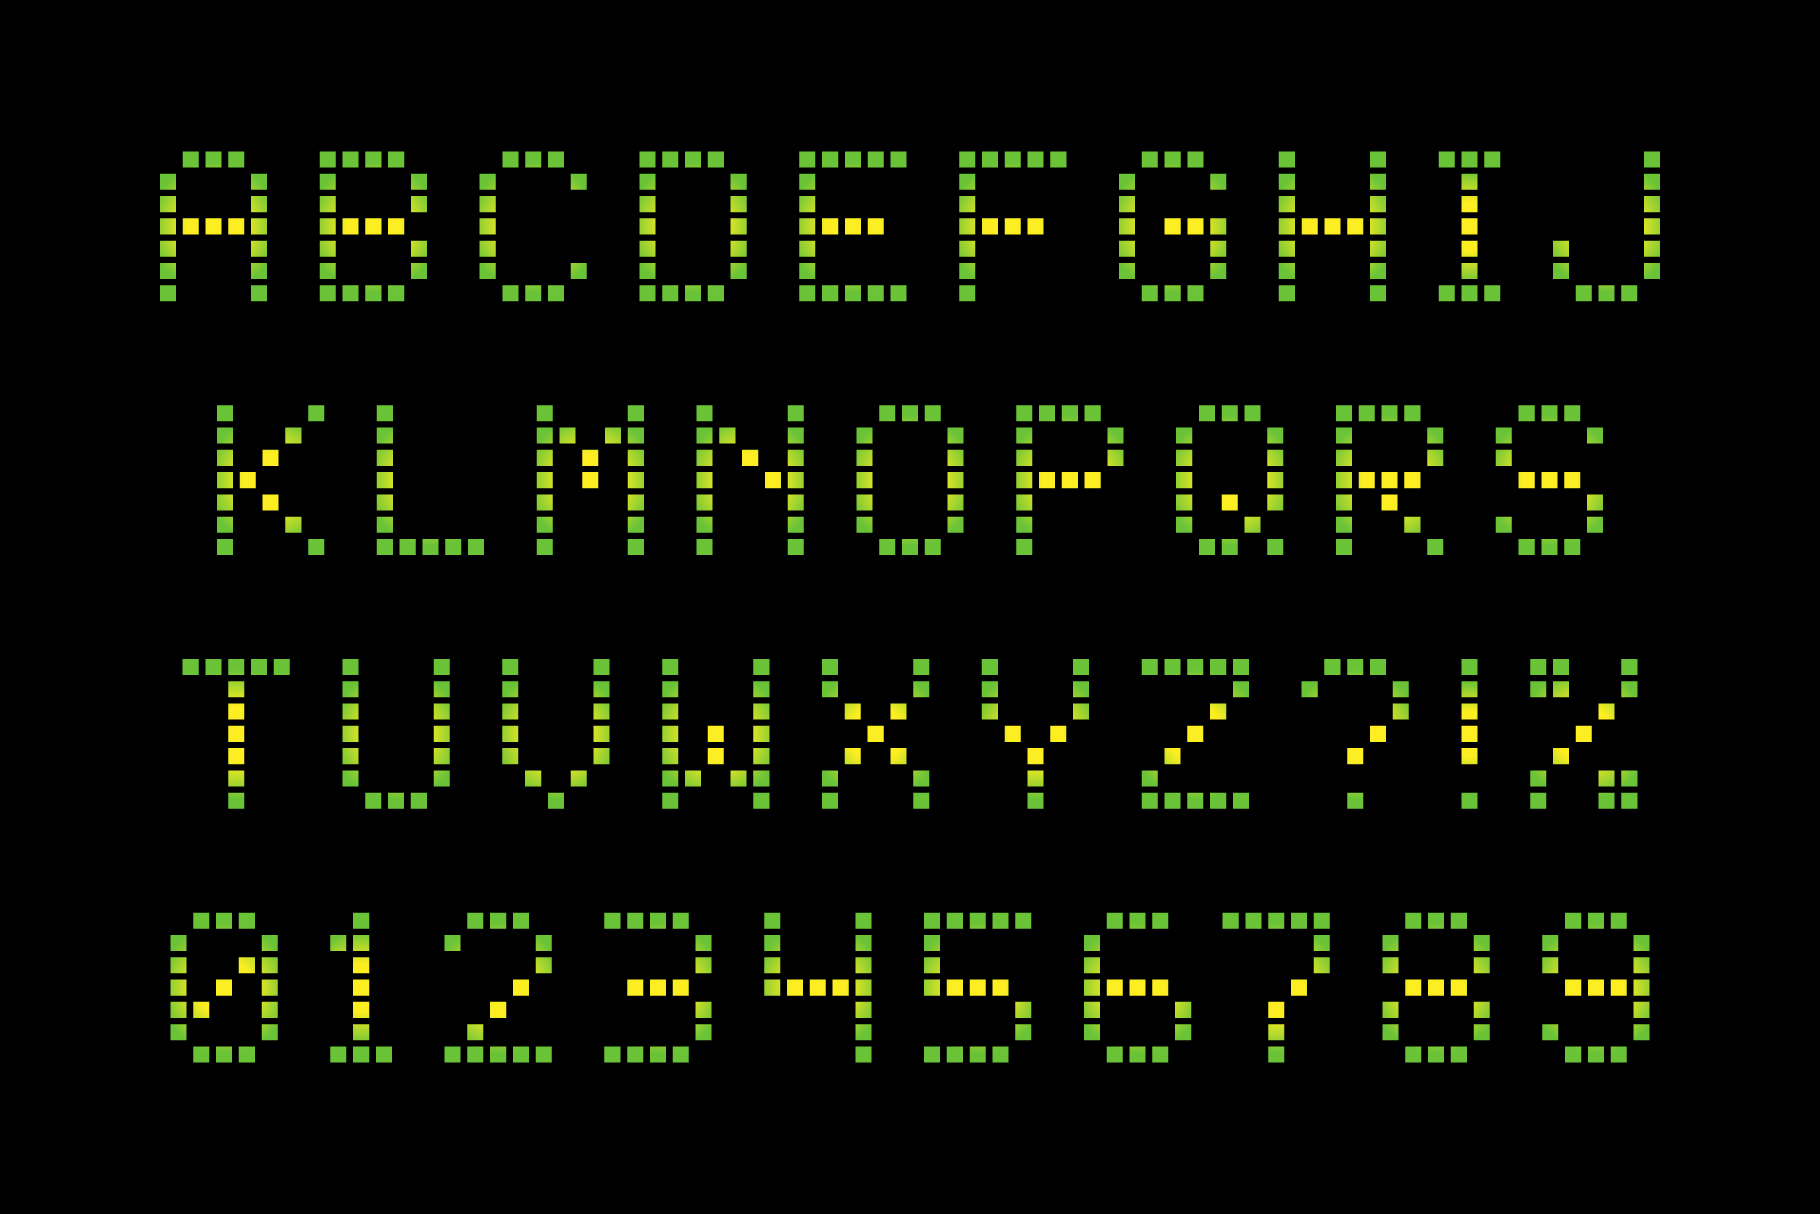 Square Dot-Matrix Display Font – Krafti Lab